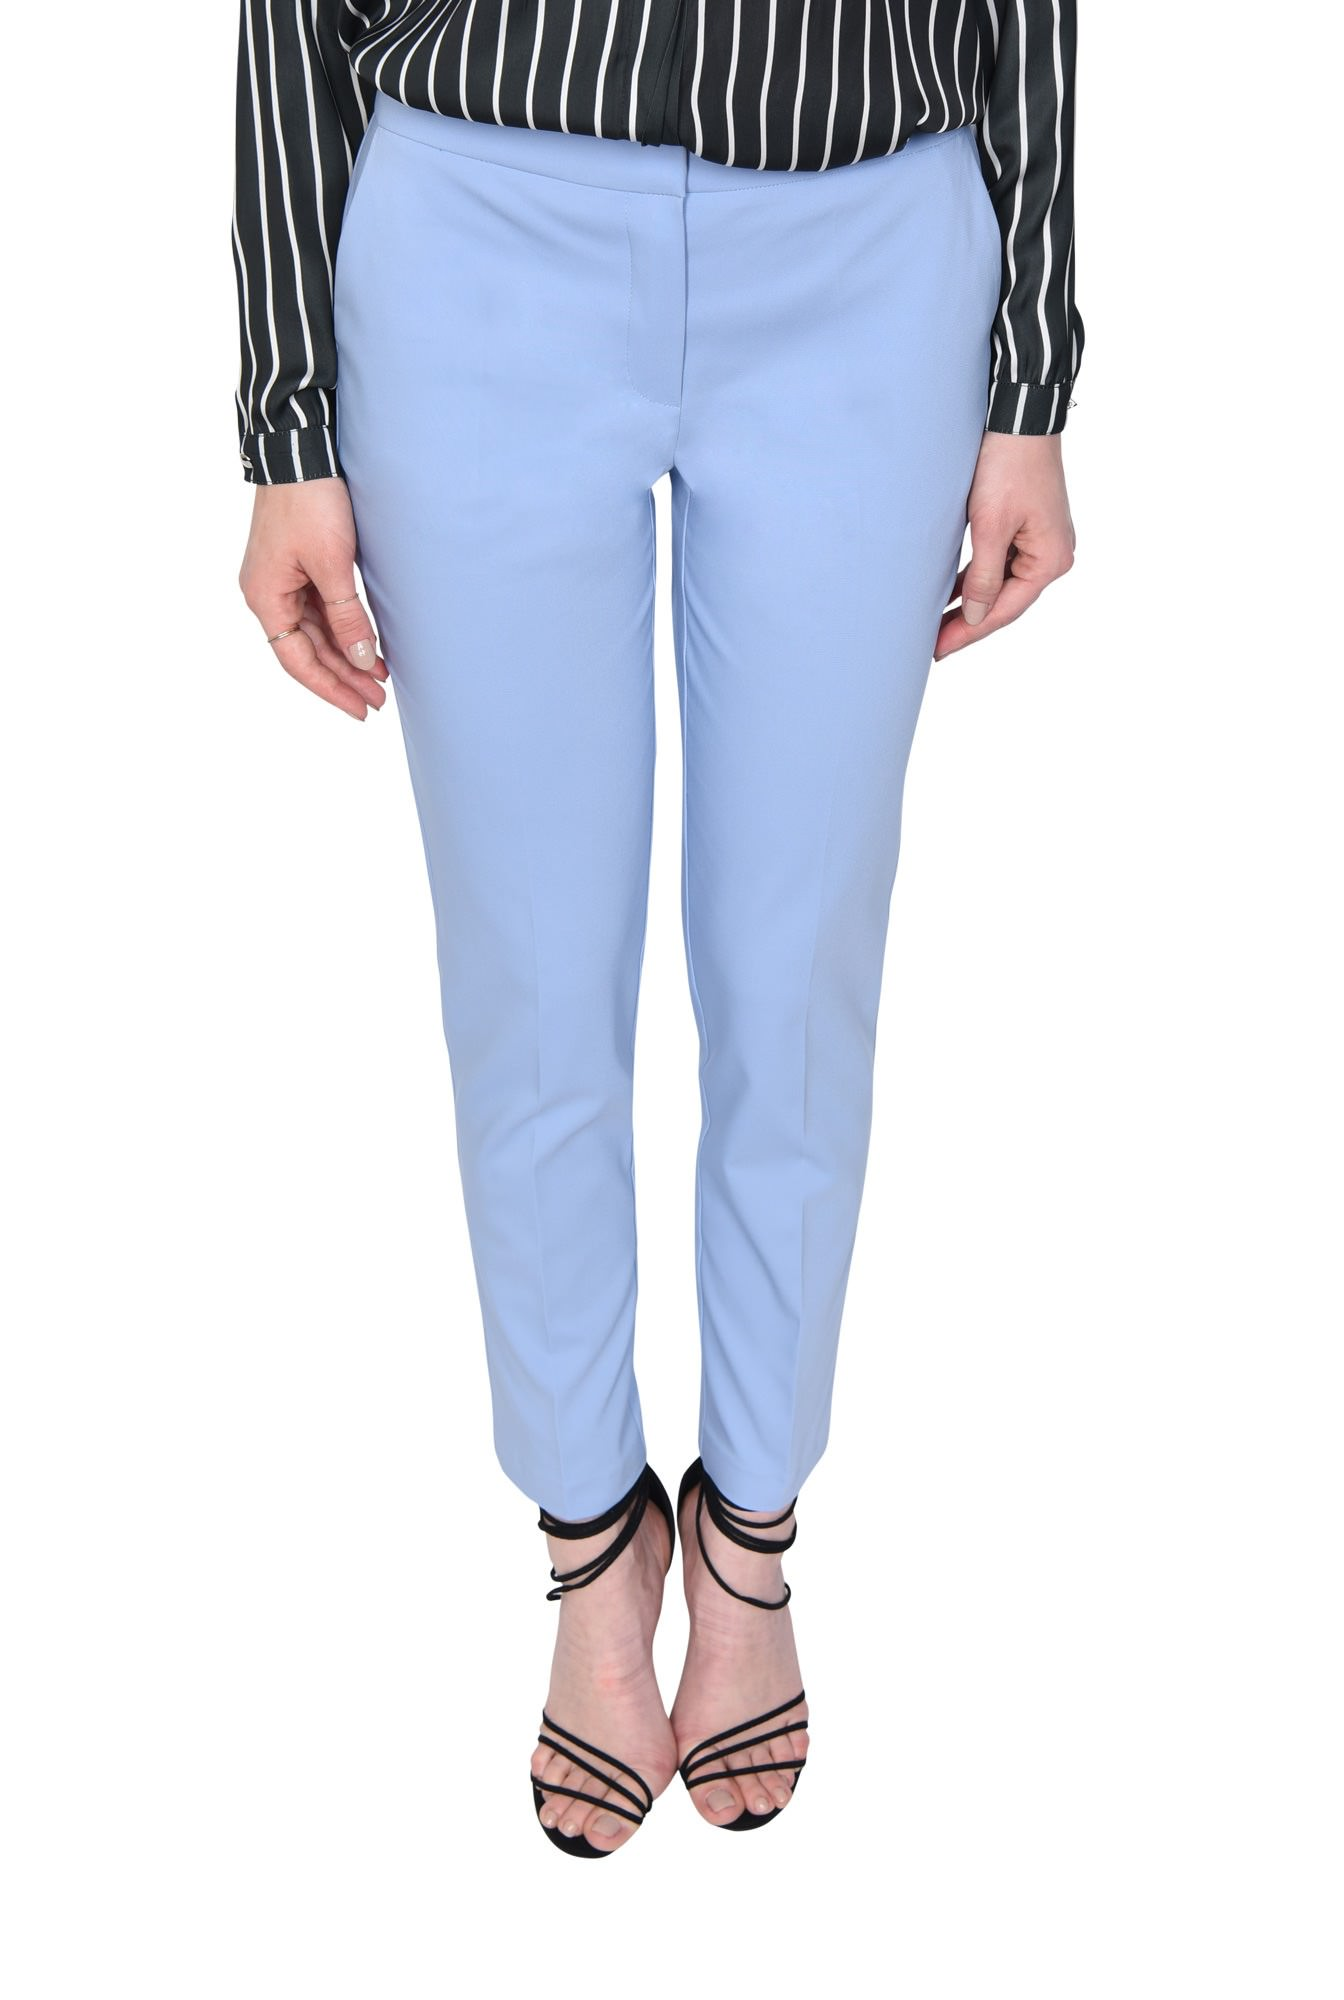 2 - PANTALON OFFICE CONIC PT 144-BLEU